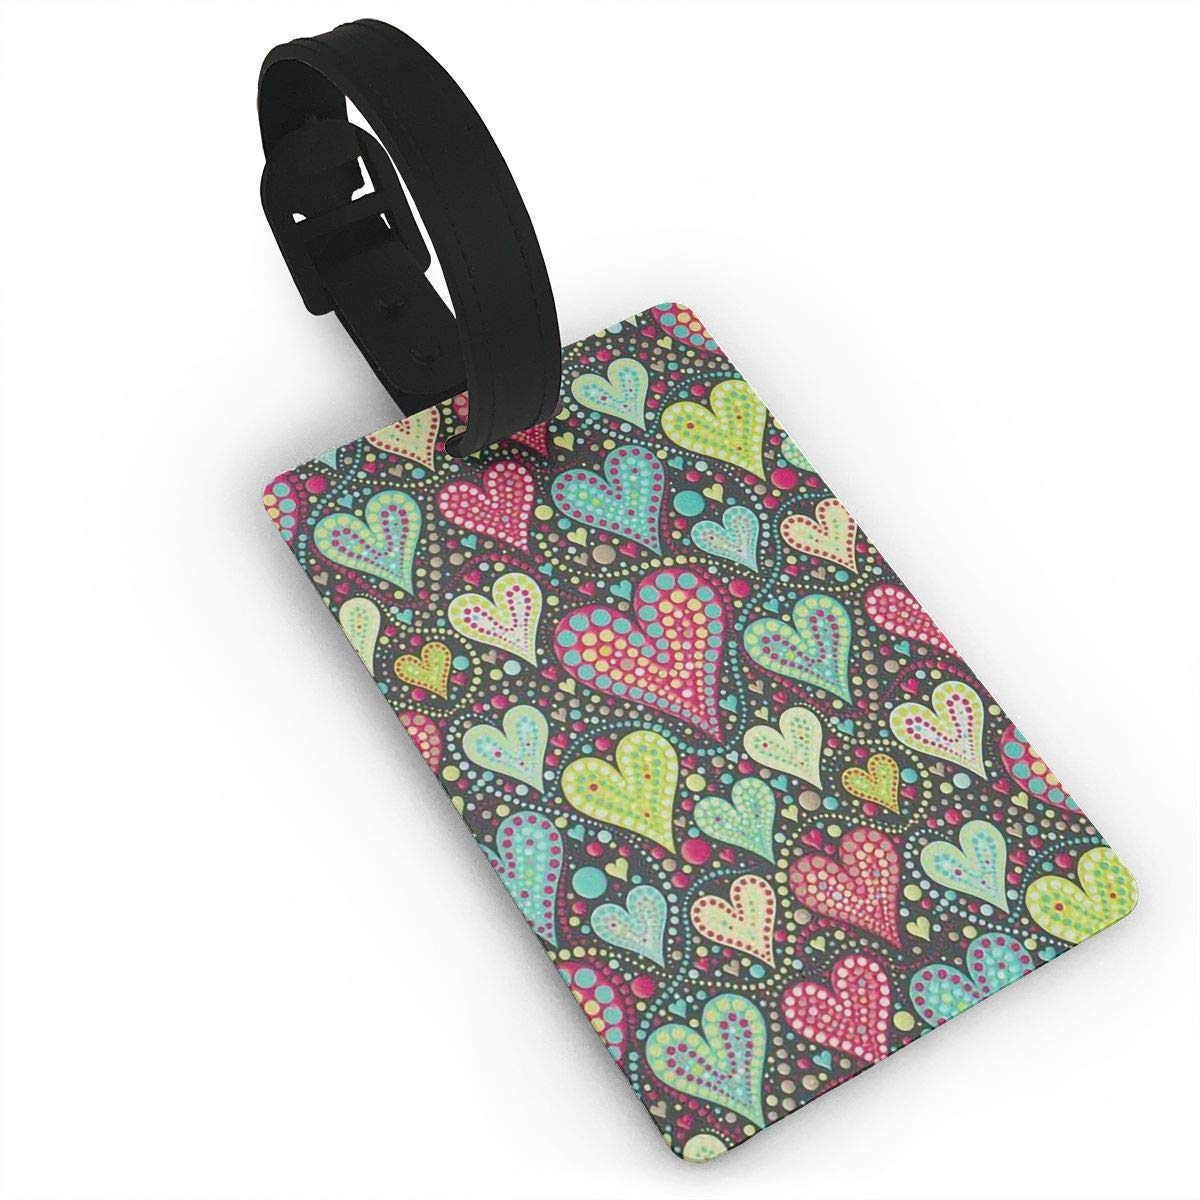 Love Hearts Cruise Luggage Tag For Travel Bag Suitcase Accessories 2 Pack Luggage Tags